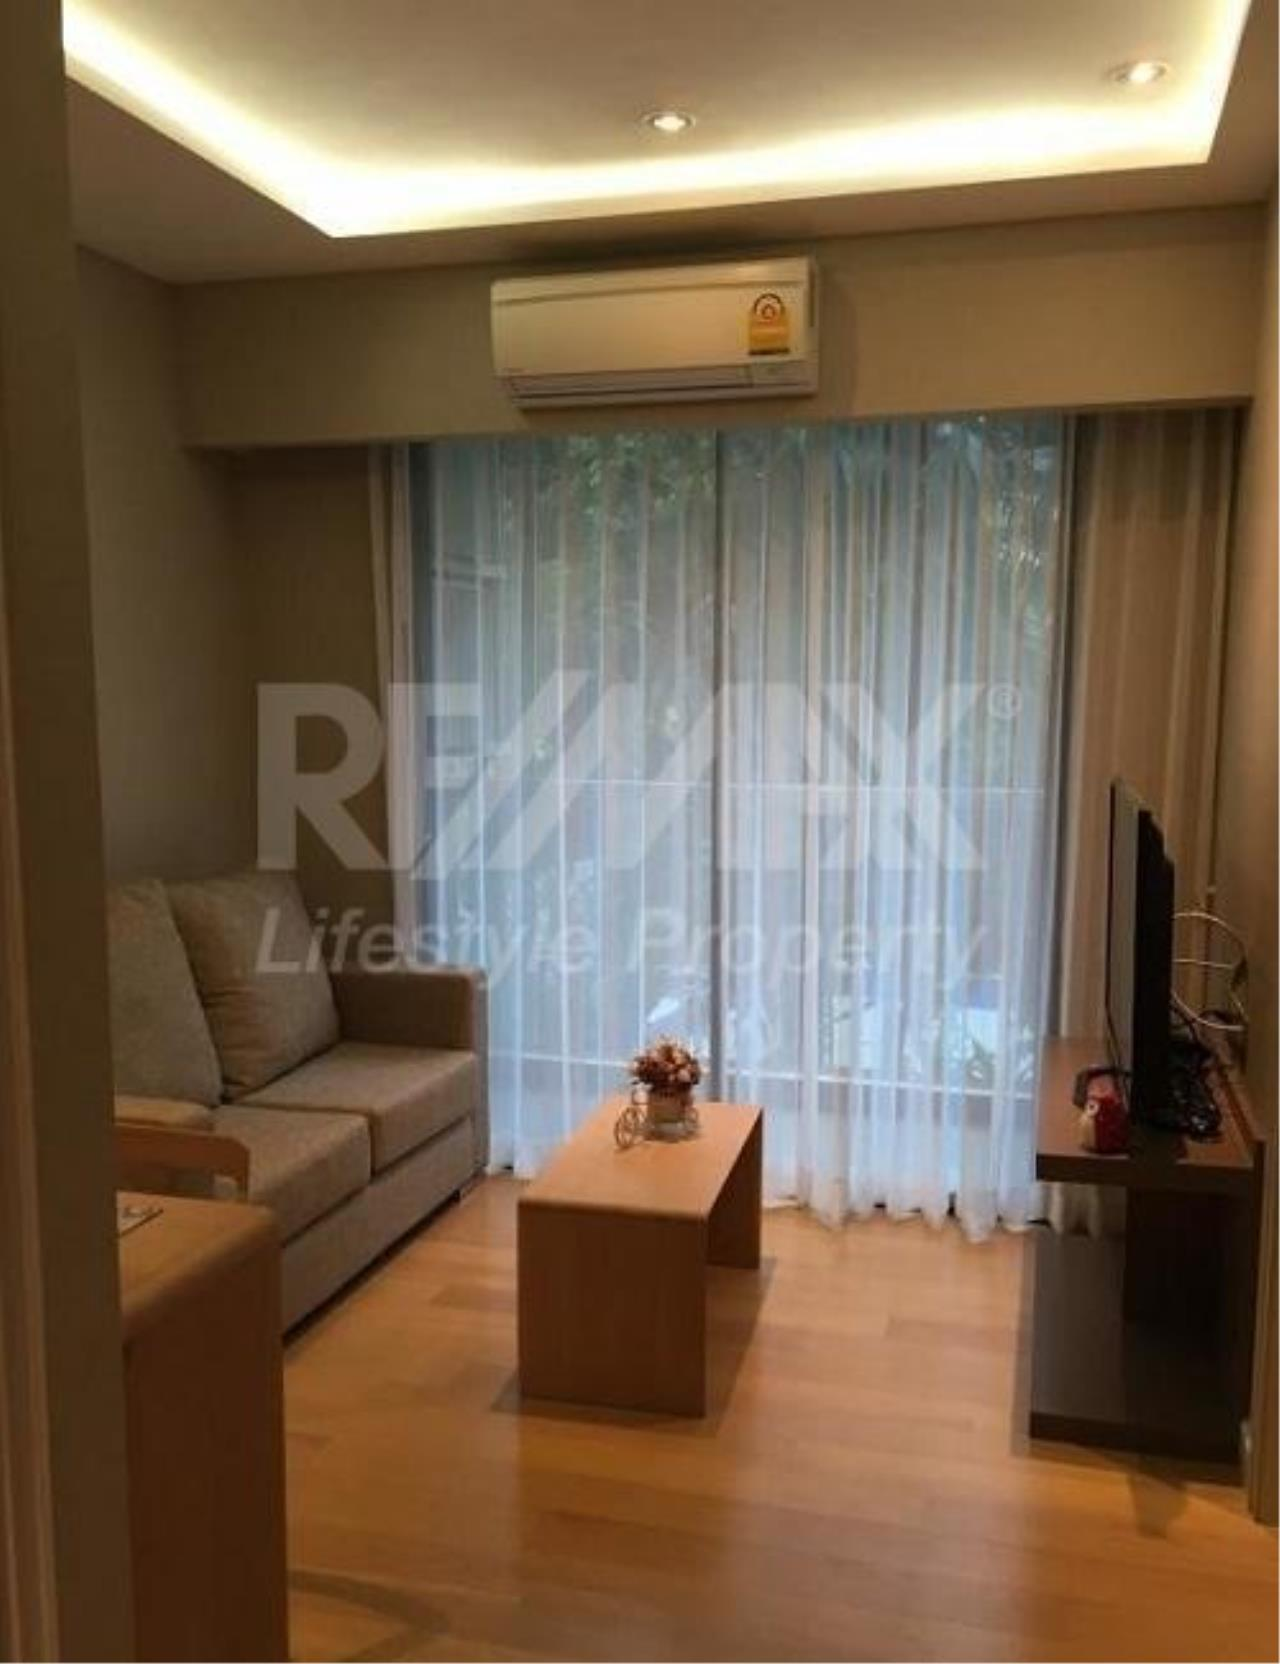 RE/MAX LifeStyle Property Agency's Tidy Deluxe Sukhumvit 34 1